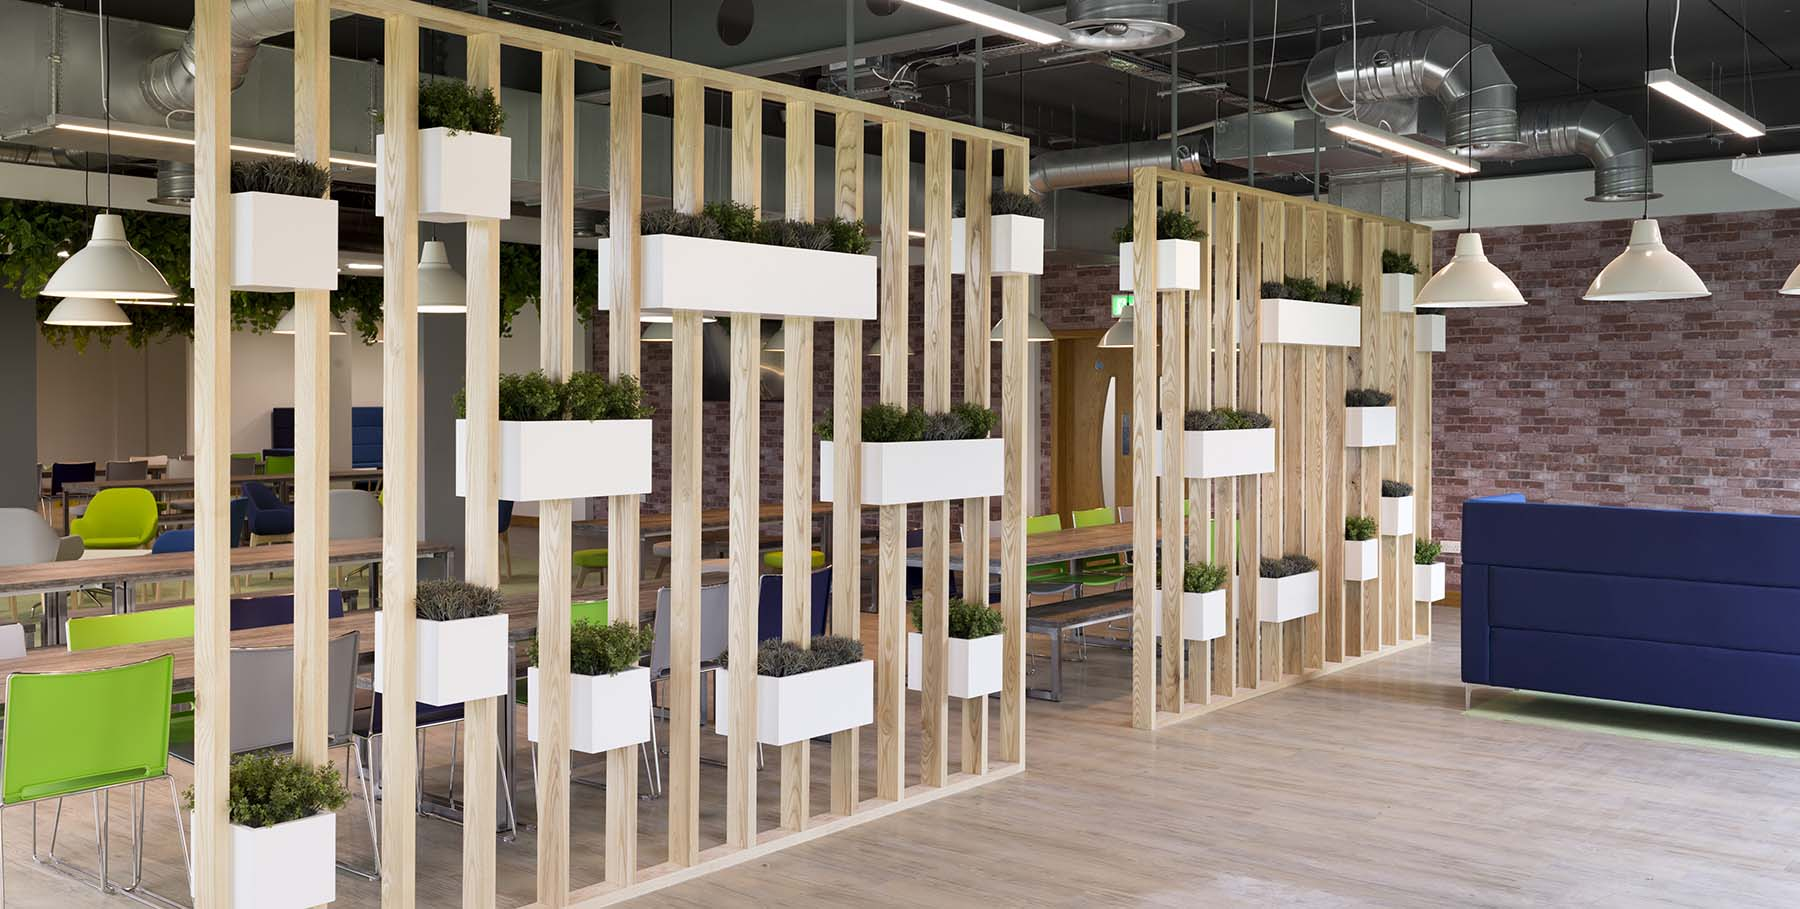 Artificial foliage planted in wooden troughs incorporated into a timber divider wall in a modern office breakout area